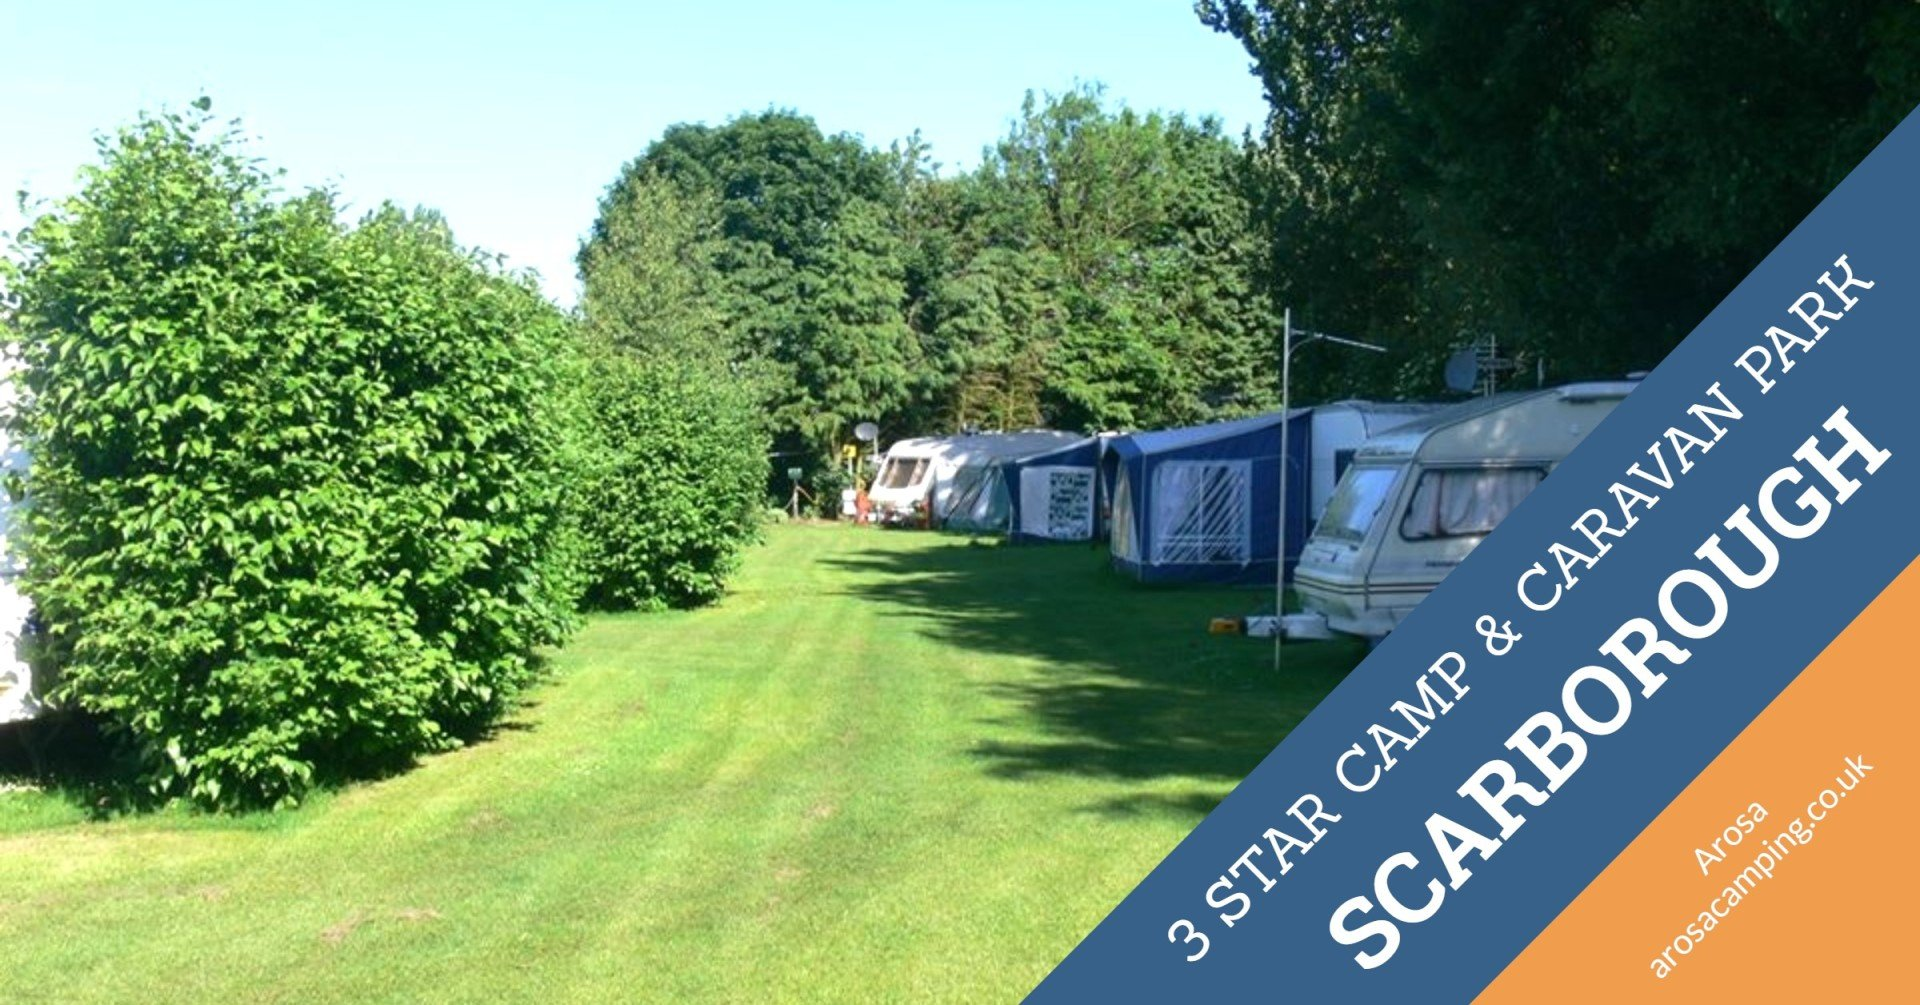 Award Winning Family Caravan And Campsite in Seamer Scarborough